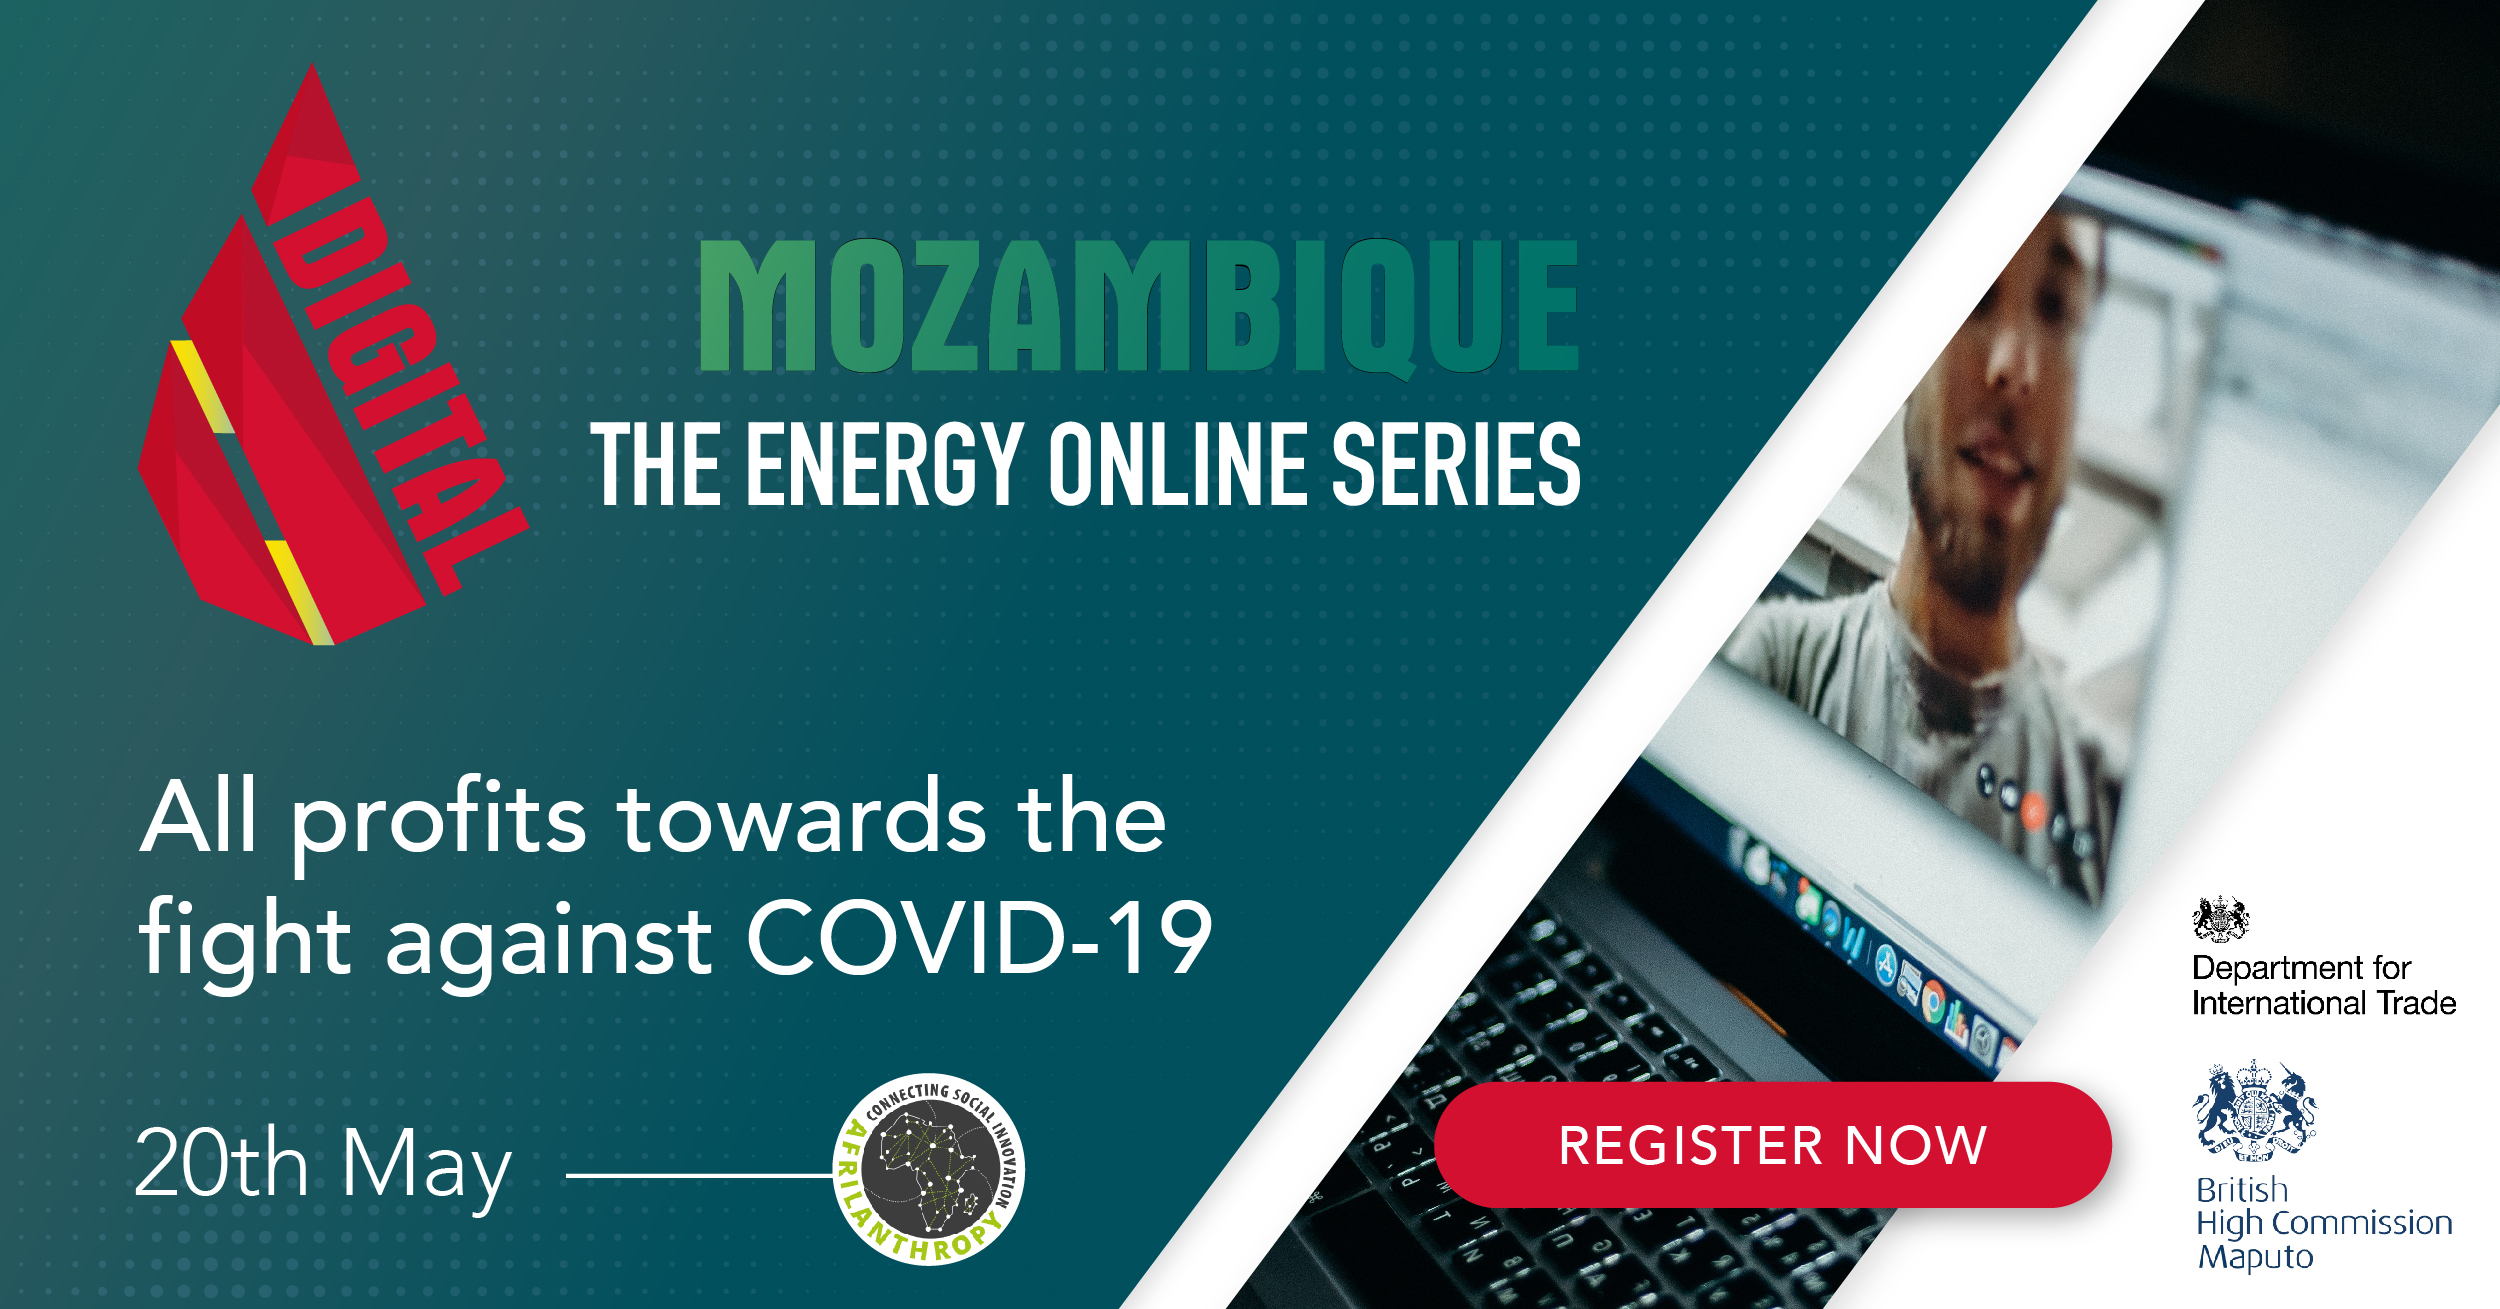 Mozambique's first charity Oil & Gas event goes live online, May 20